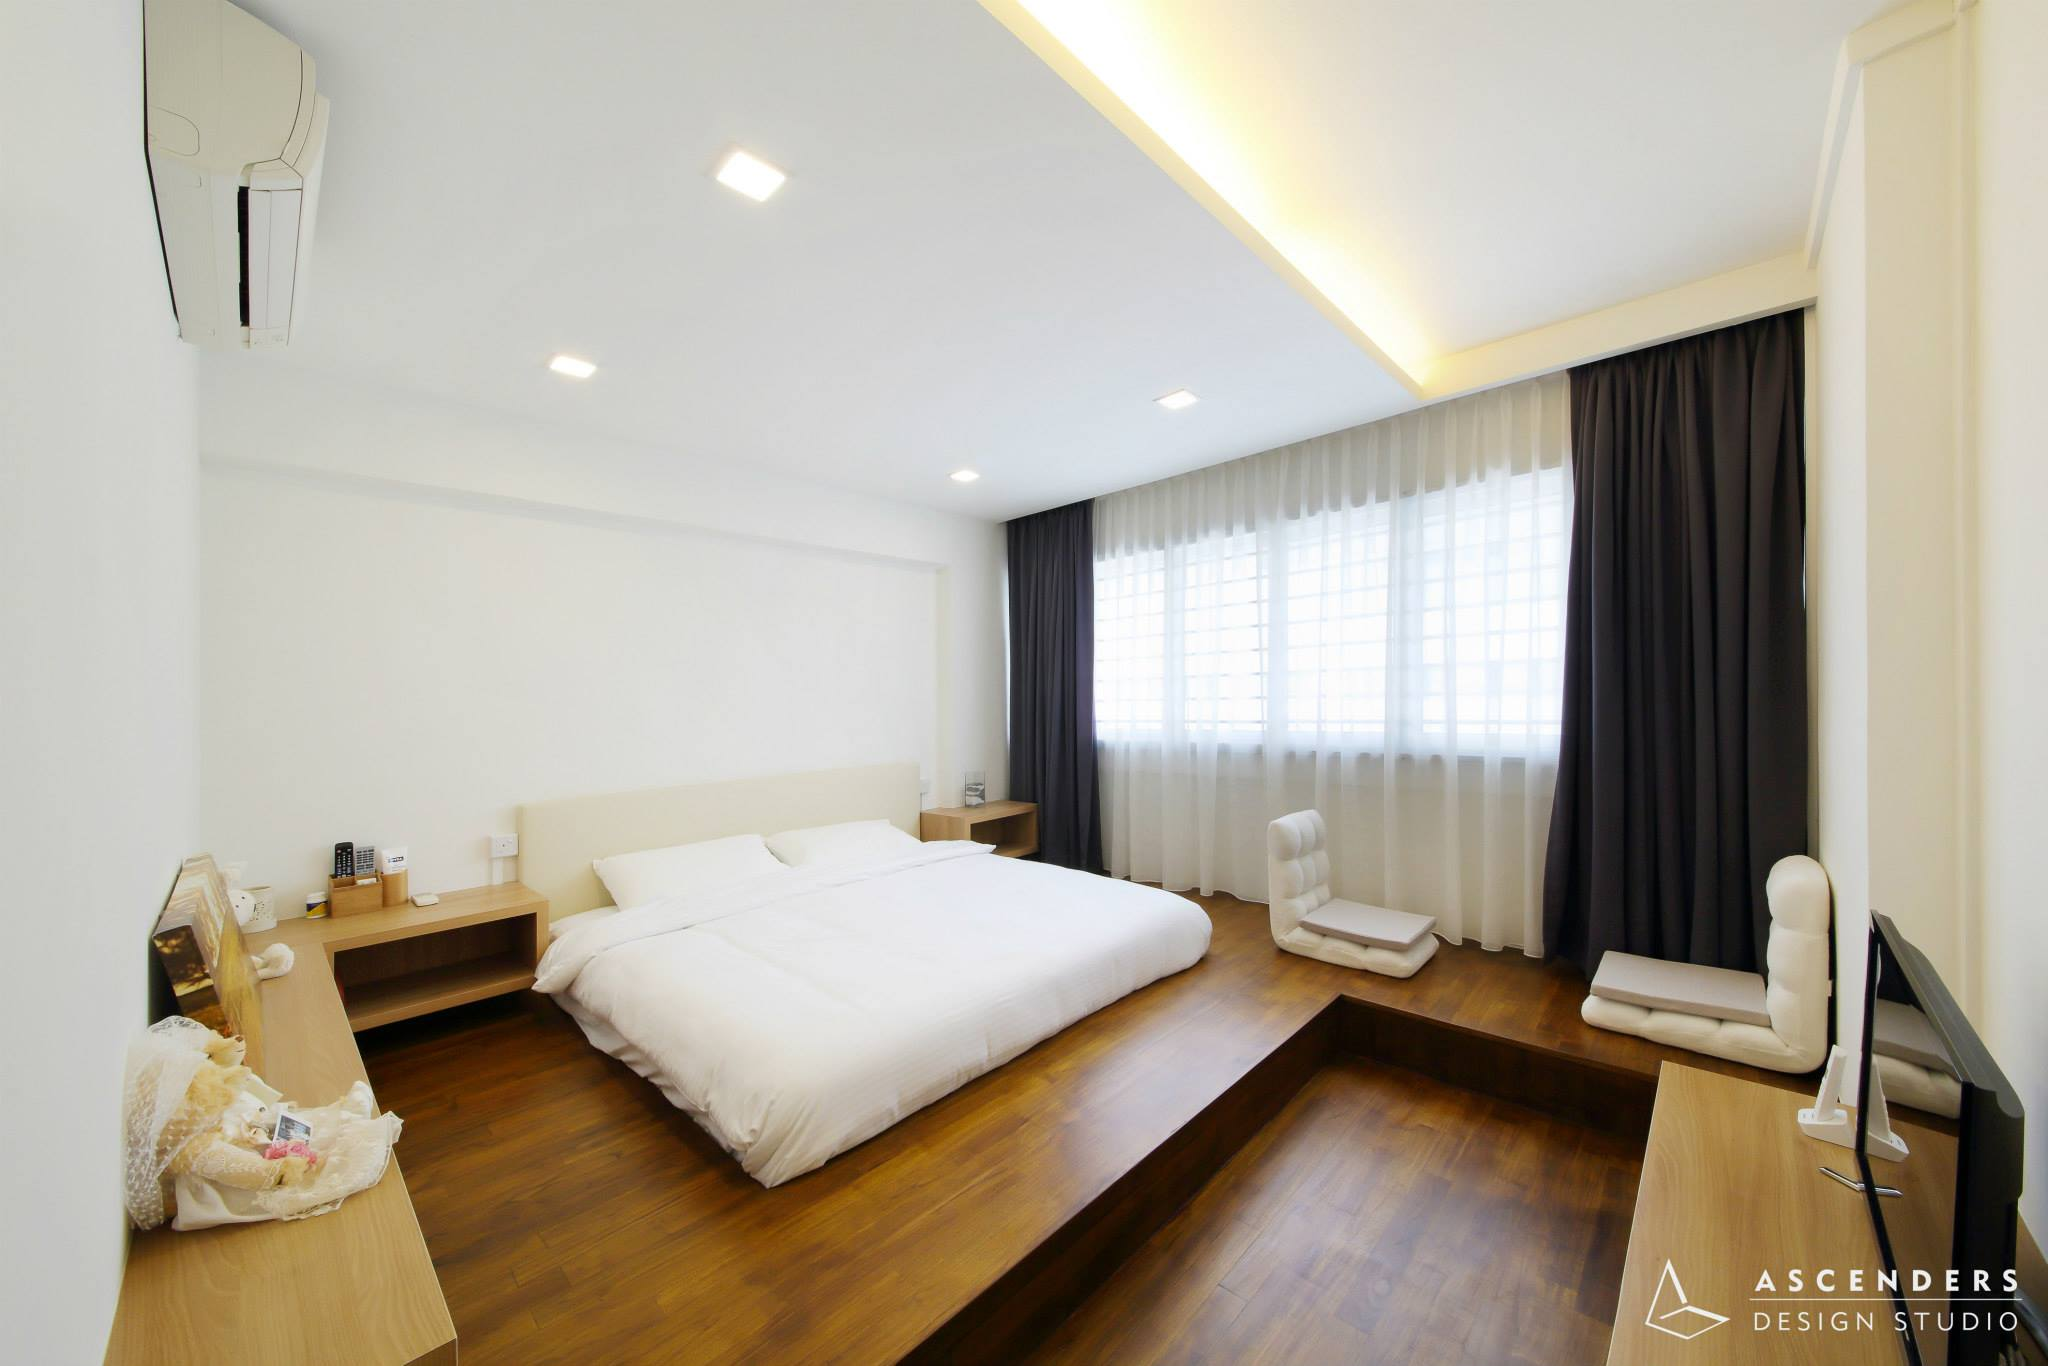 4roomTampines Ascenders1 - Wood in Interior Design and 5 Beautiful Homes with Wooden Flooring